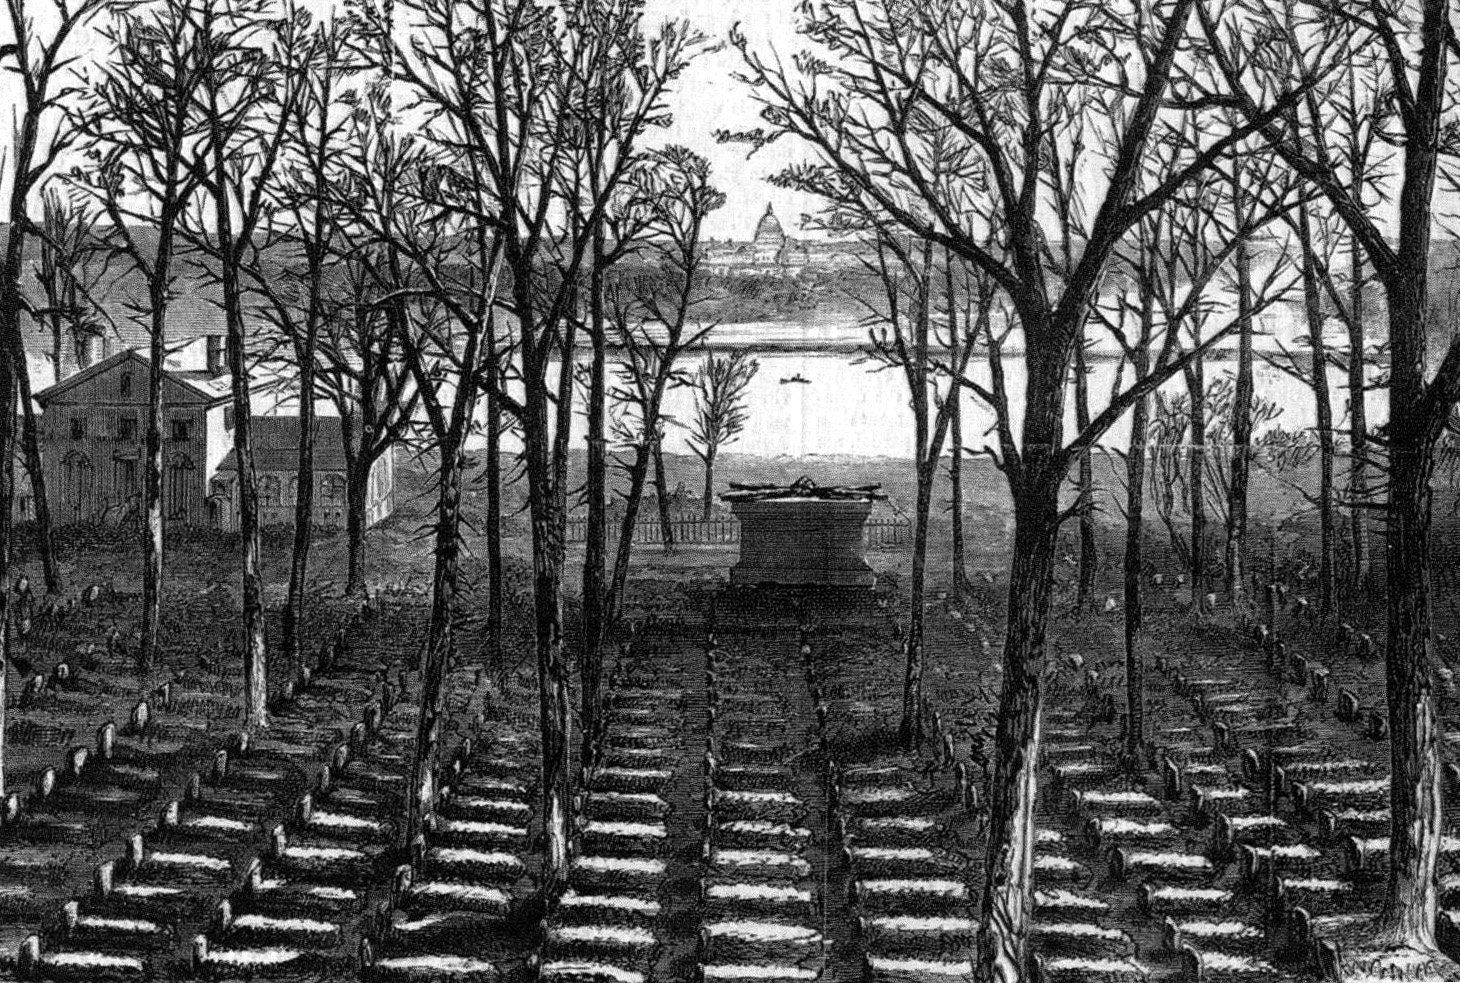 Partially in anger against his former friend's decision to fight for the South, Quartermaster General Montgomery C. Meigs ordered thousands of Union dead buried at Arlington House, personally selecting the site behind Mrs. Custis's gardens for a mass grave of unknown soldiers (above).